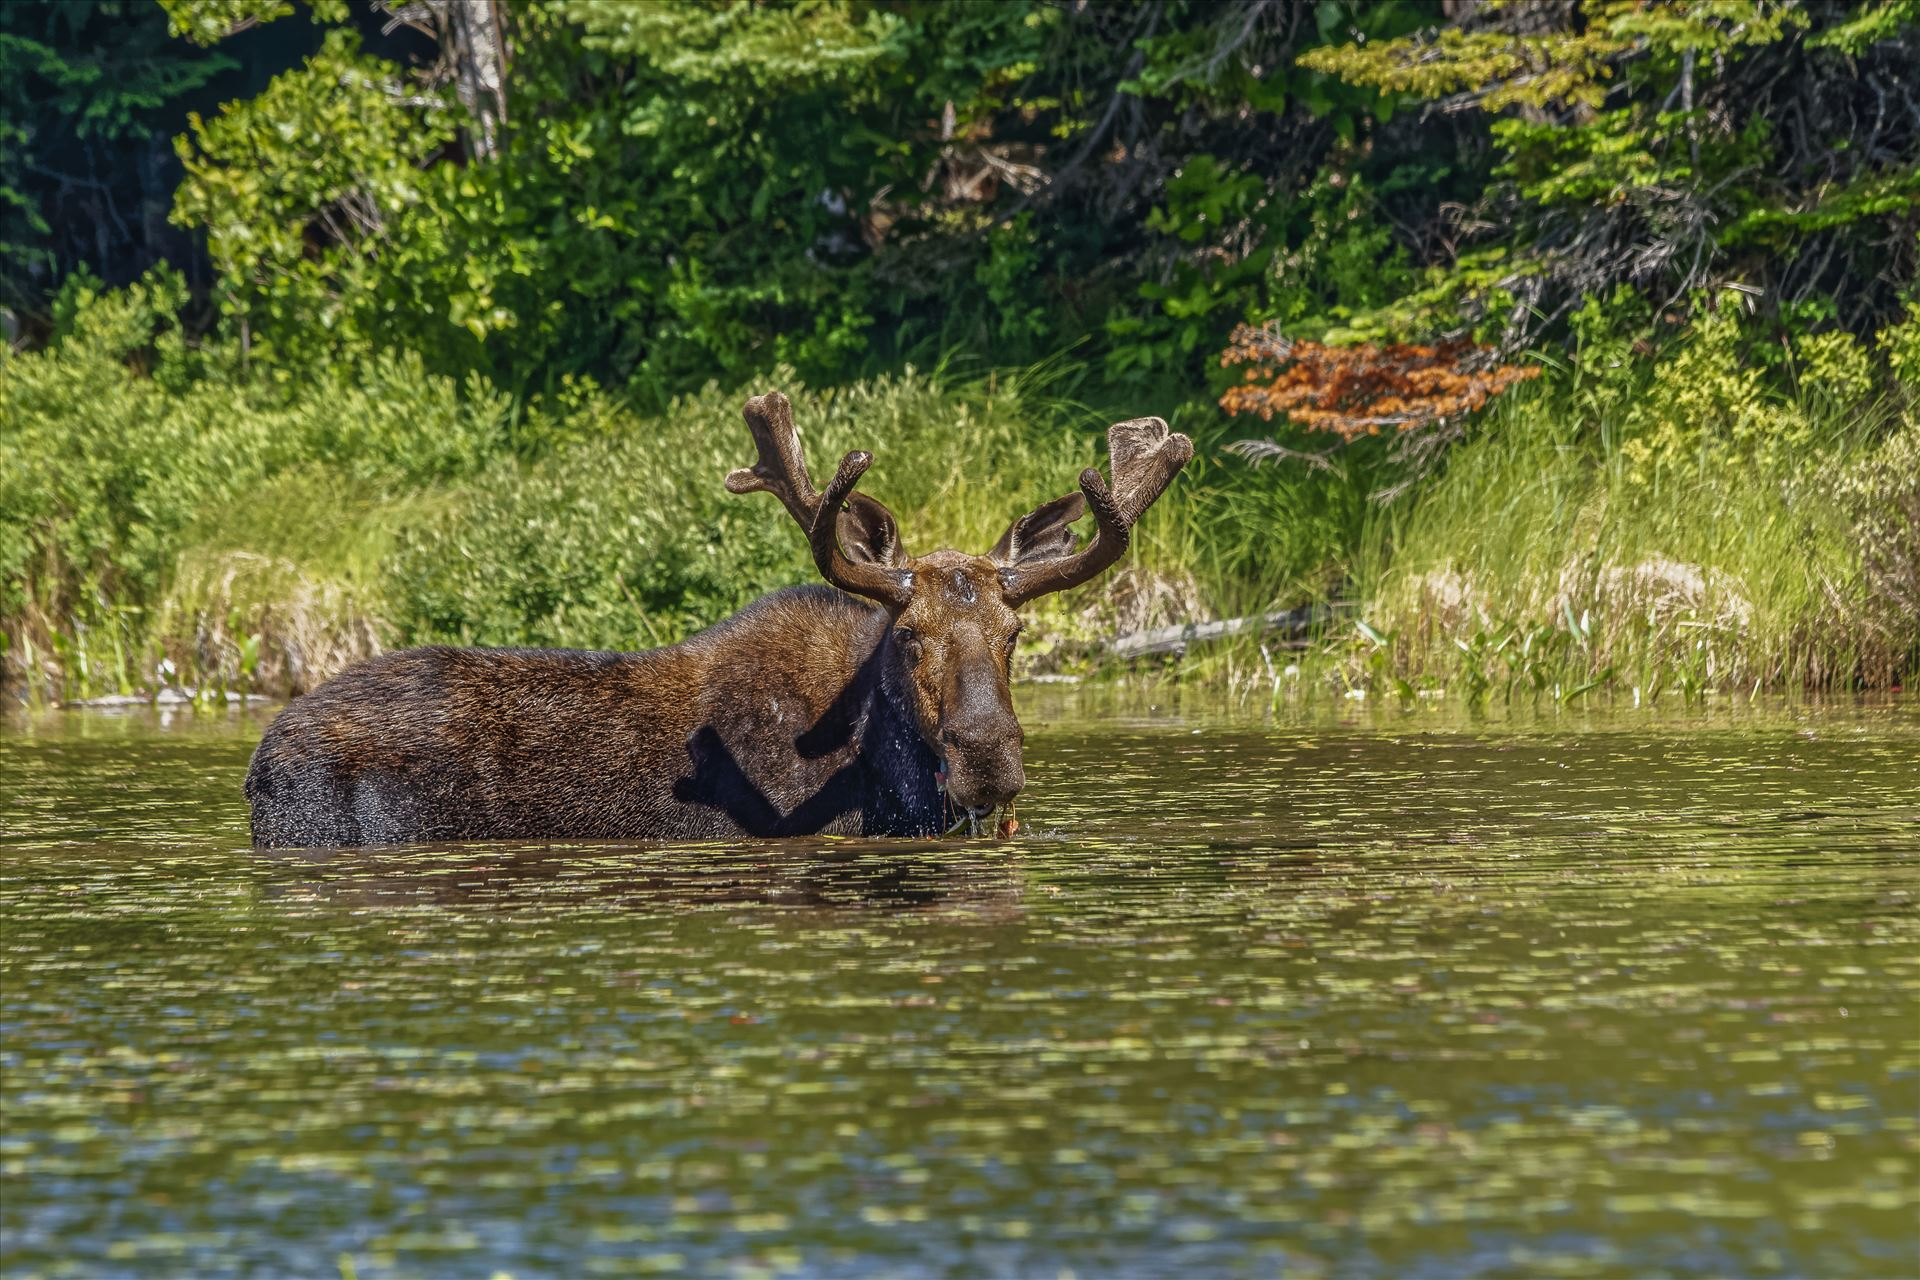 Bull Moose at a Small Pond - Moose at a Small Pond Off of Golden Road, Maine by Buckmaster